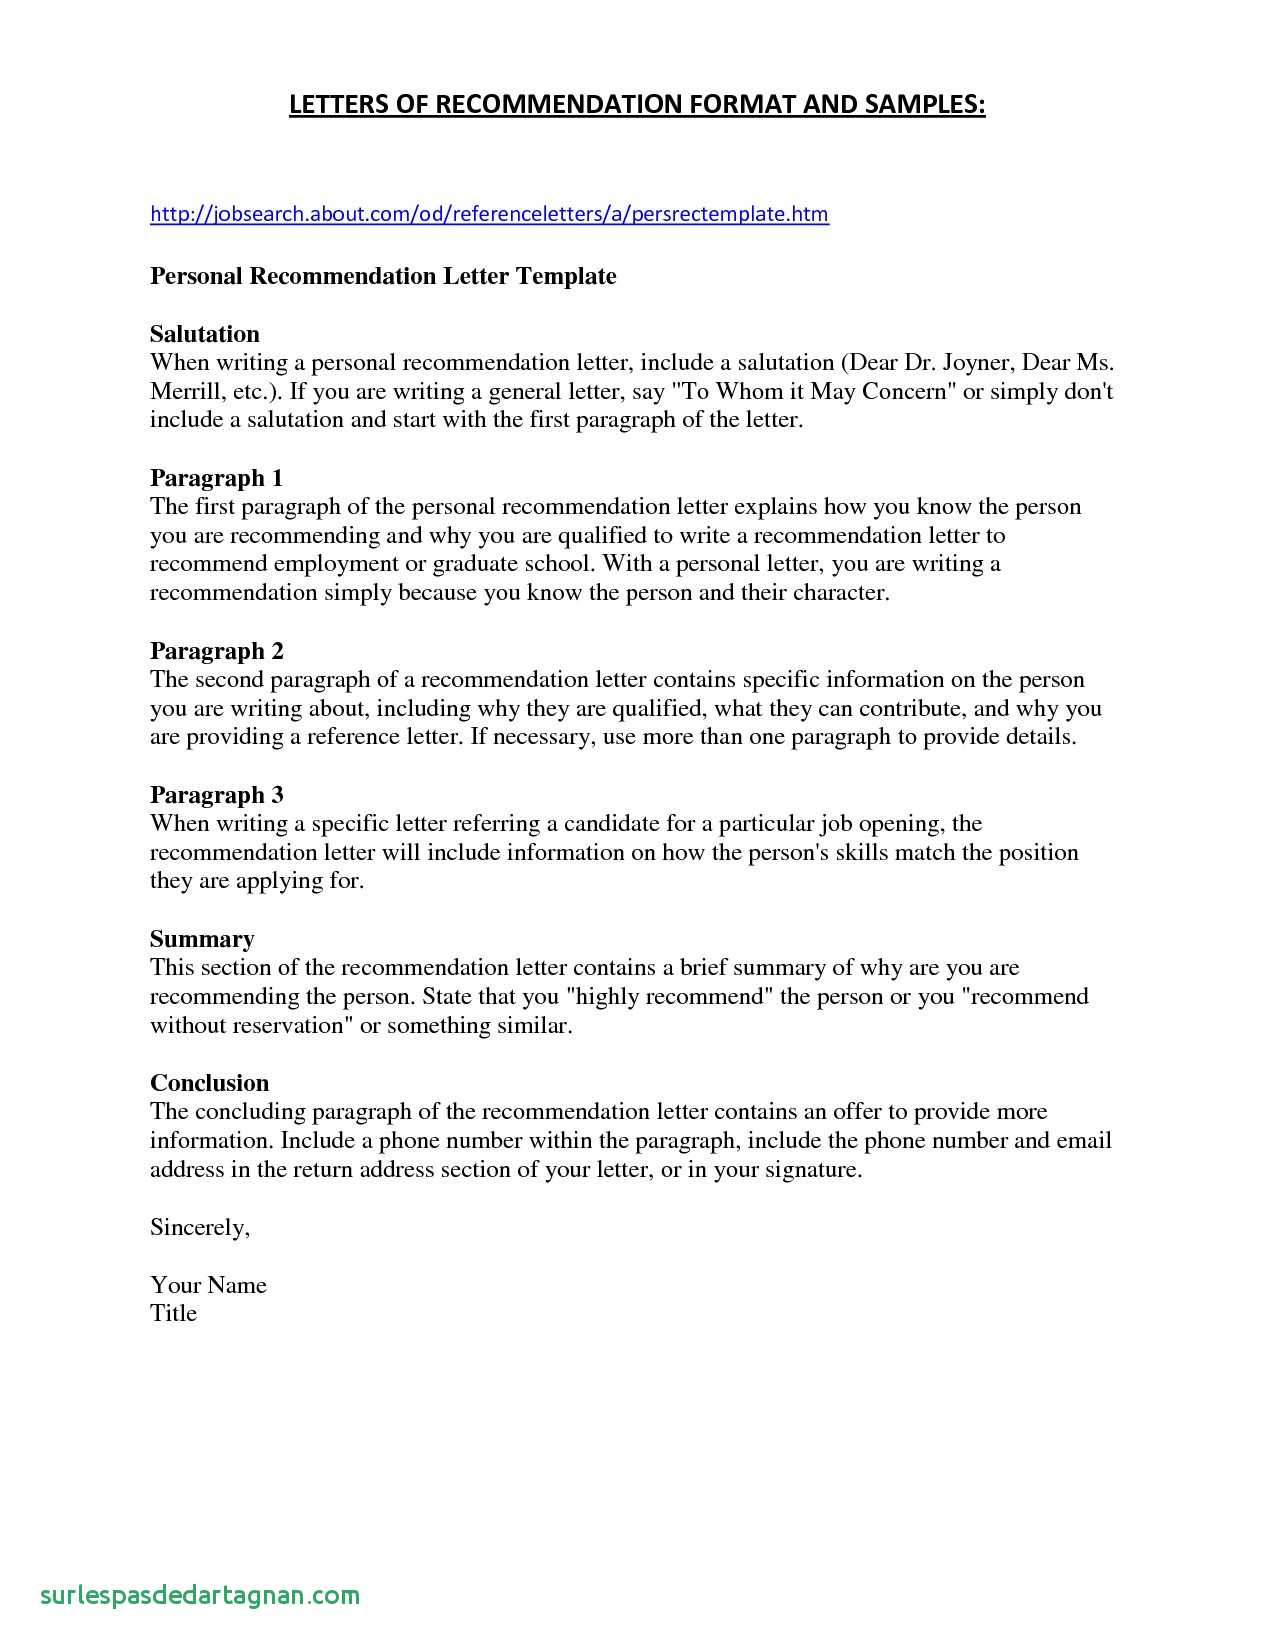 Personal Recommendation Letter Template Free - Police Ficer Resume Fresh Article Summary Template Free Website